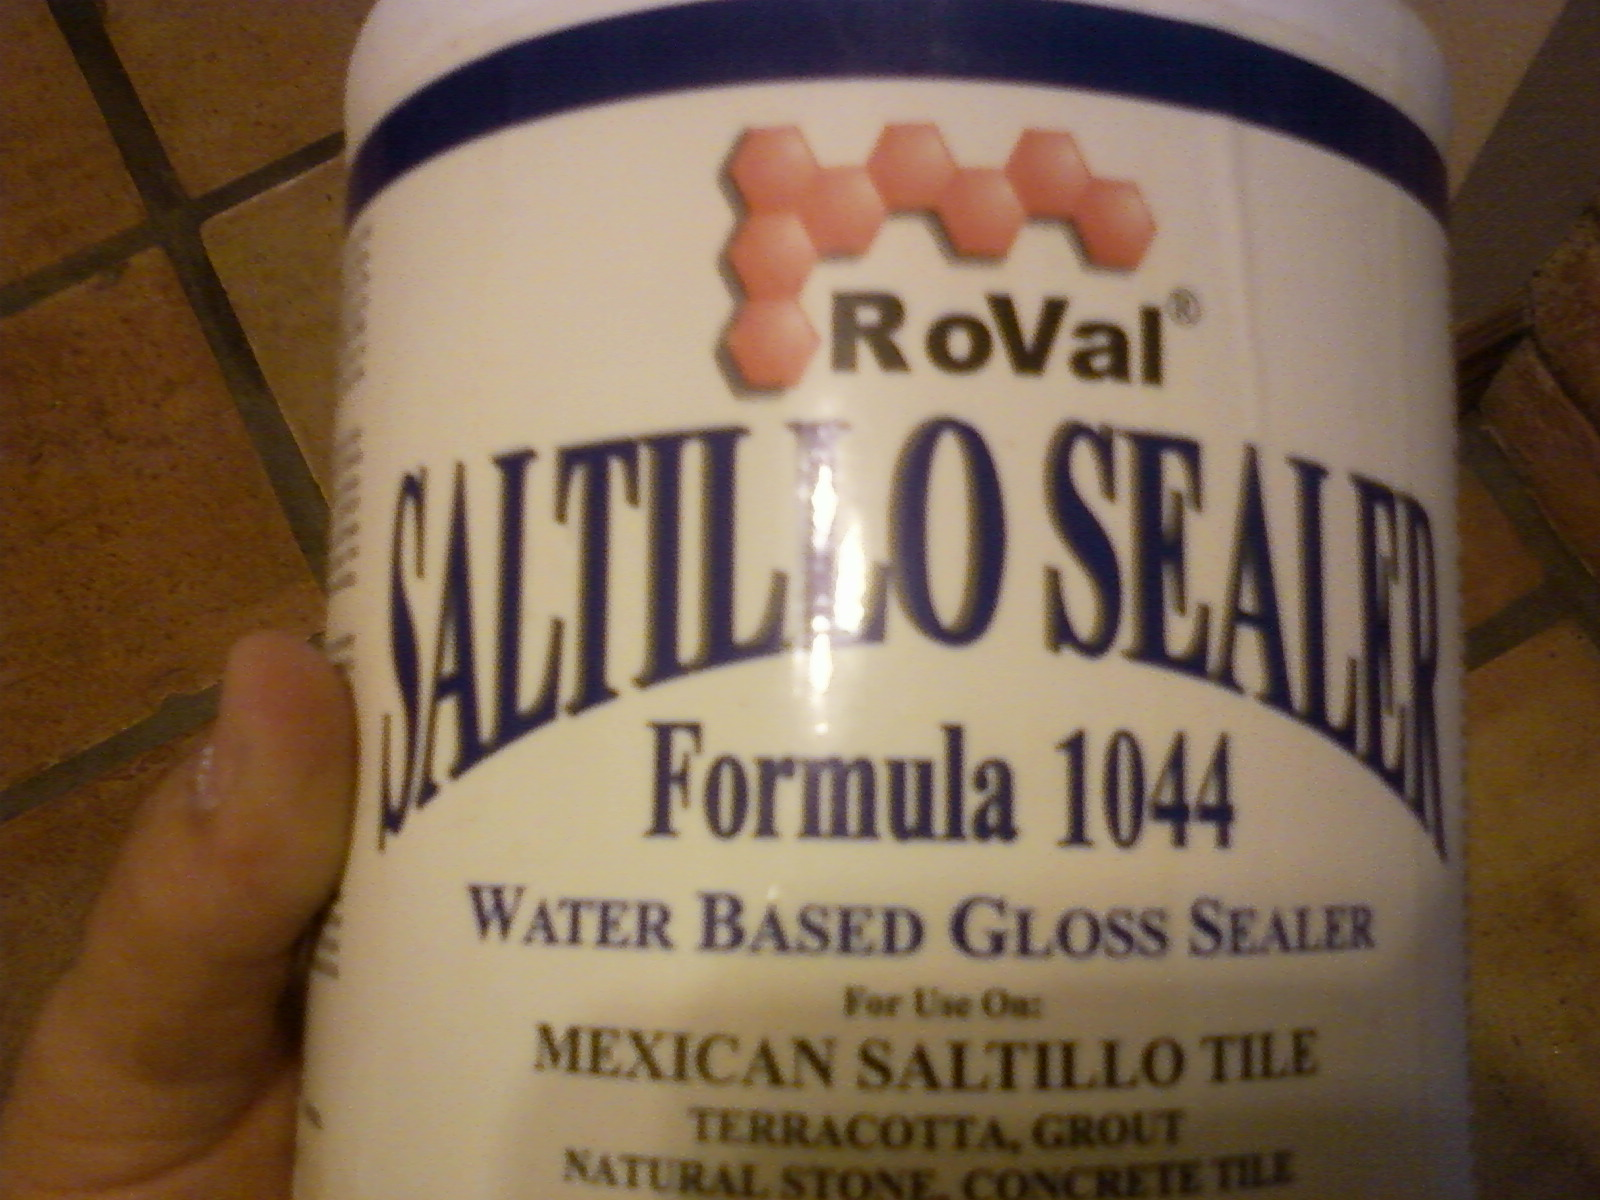 Any Saltillo Experts